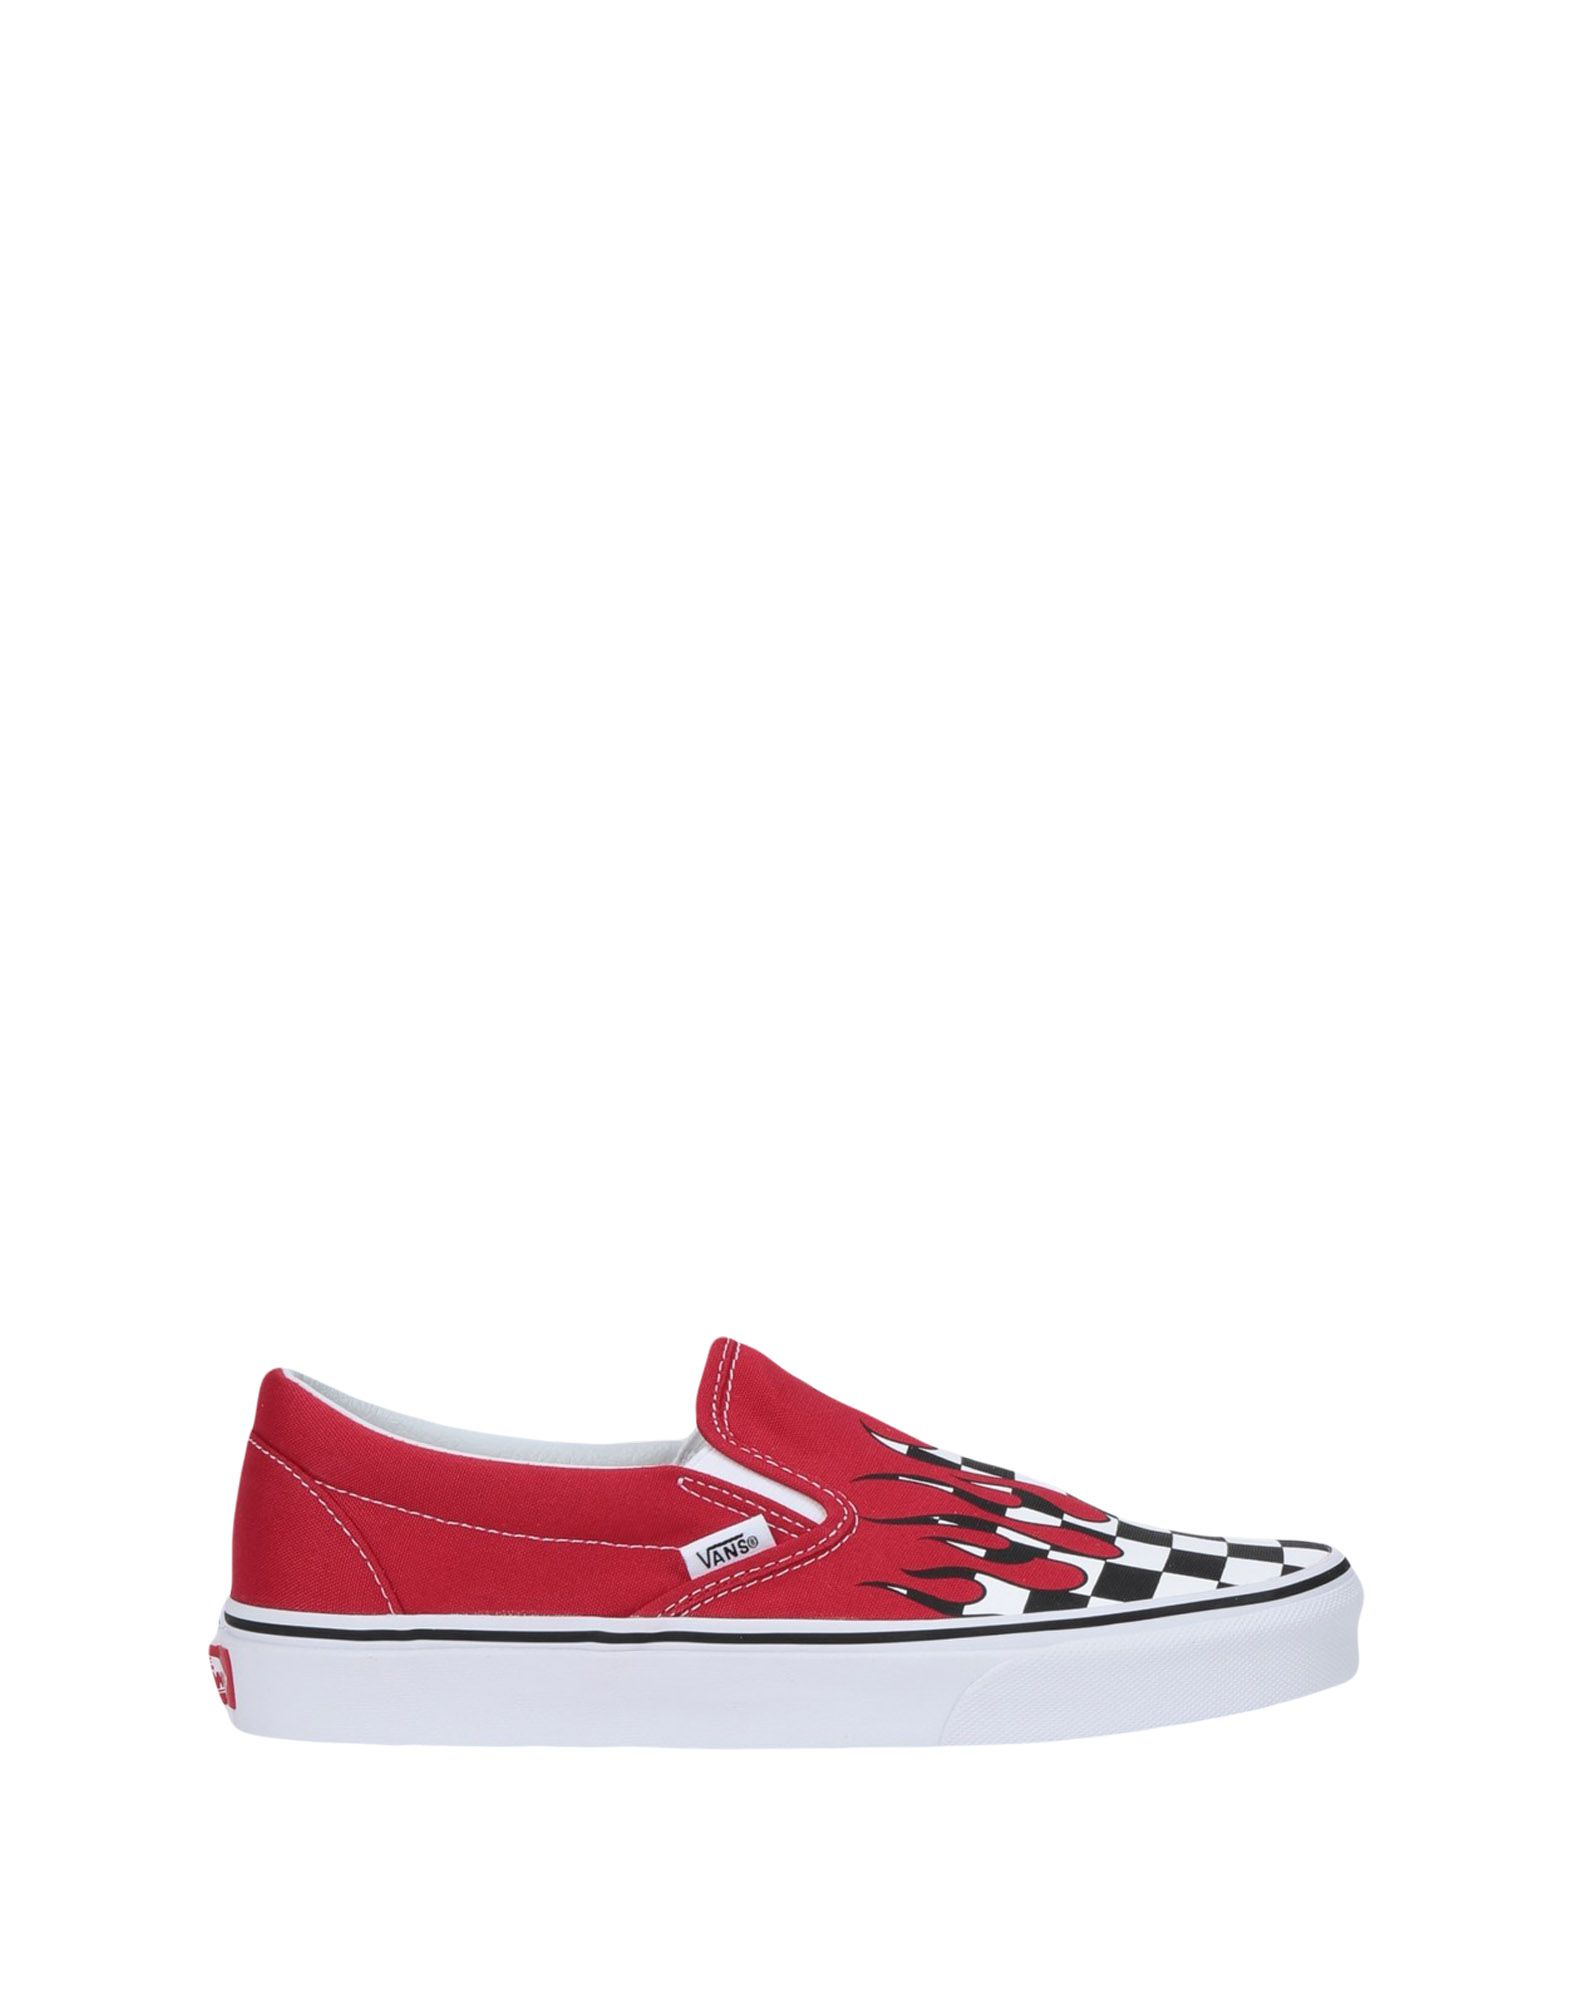 Vans Ua Classic Slip-On (Checker Flame) Vans - Sneakers - Women Vans Flame) Sneakers online on  Australia - 11559855JW e42514